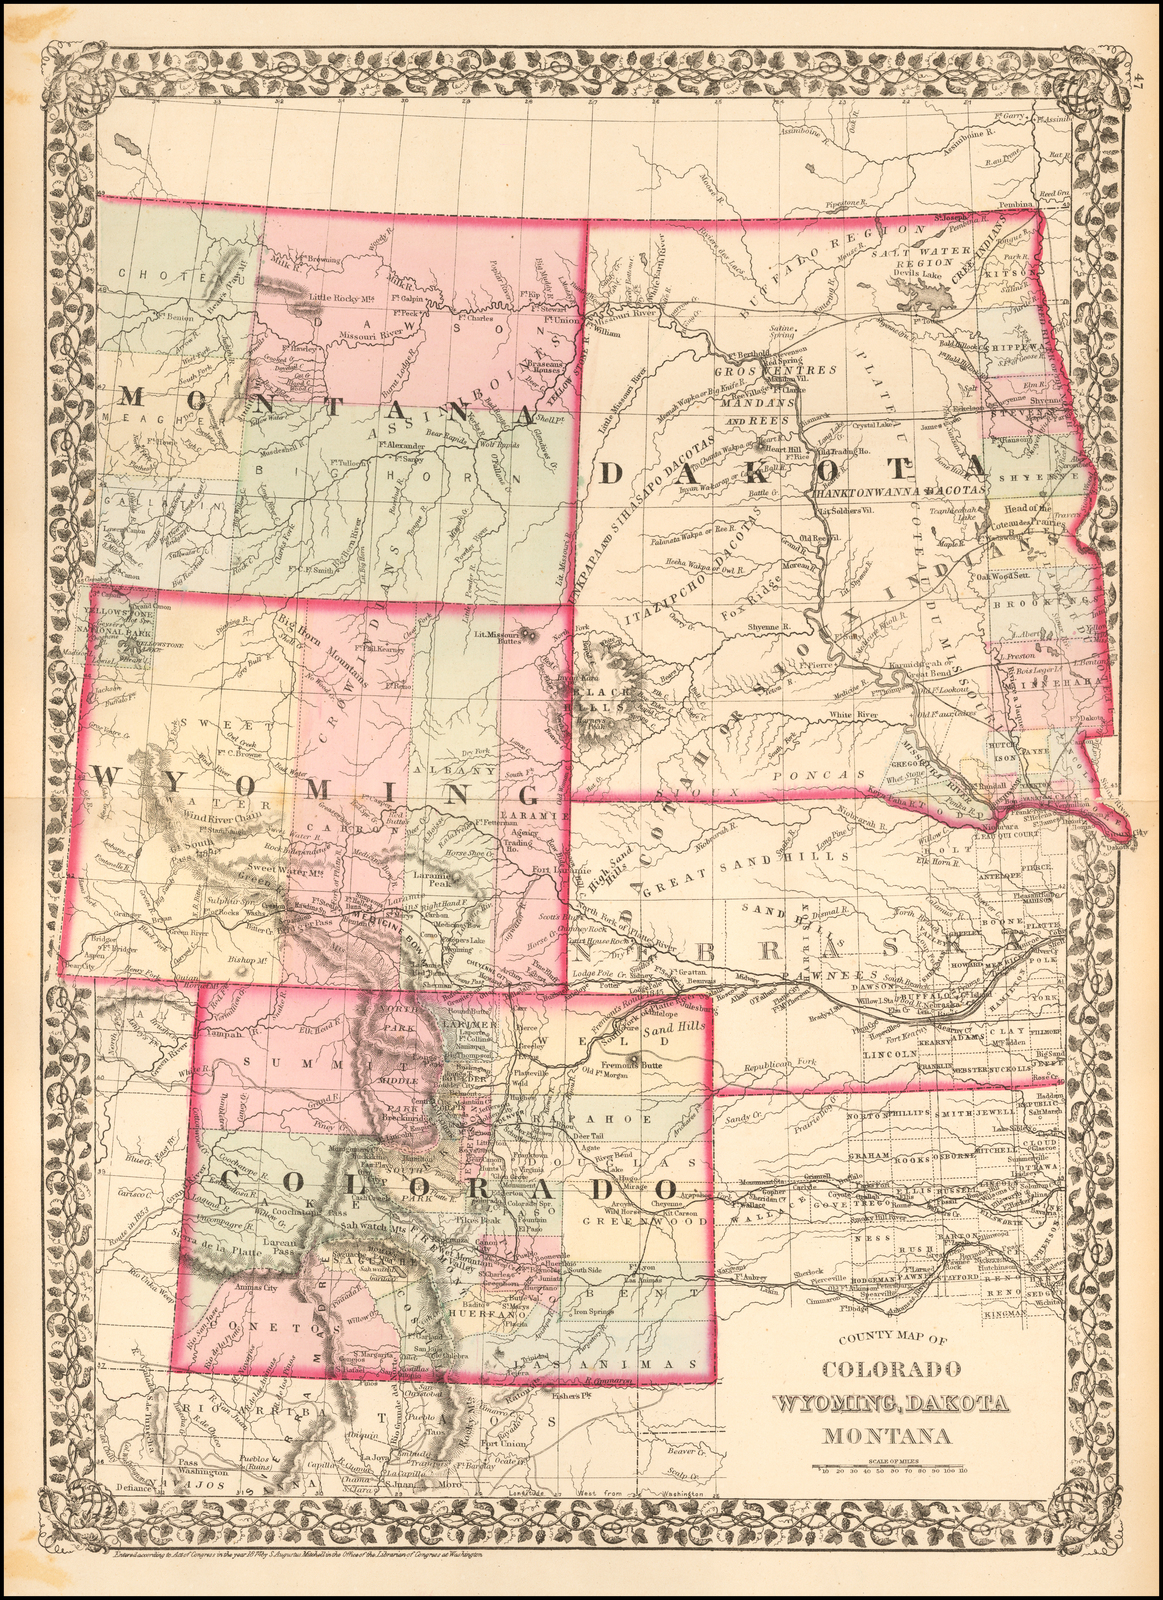 County Map of Colorado, Wyoming, Dakota Montana - Barry ...